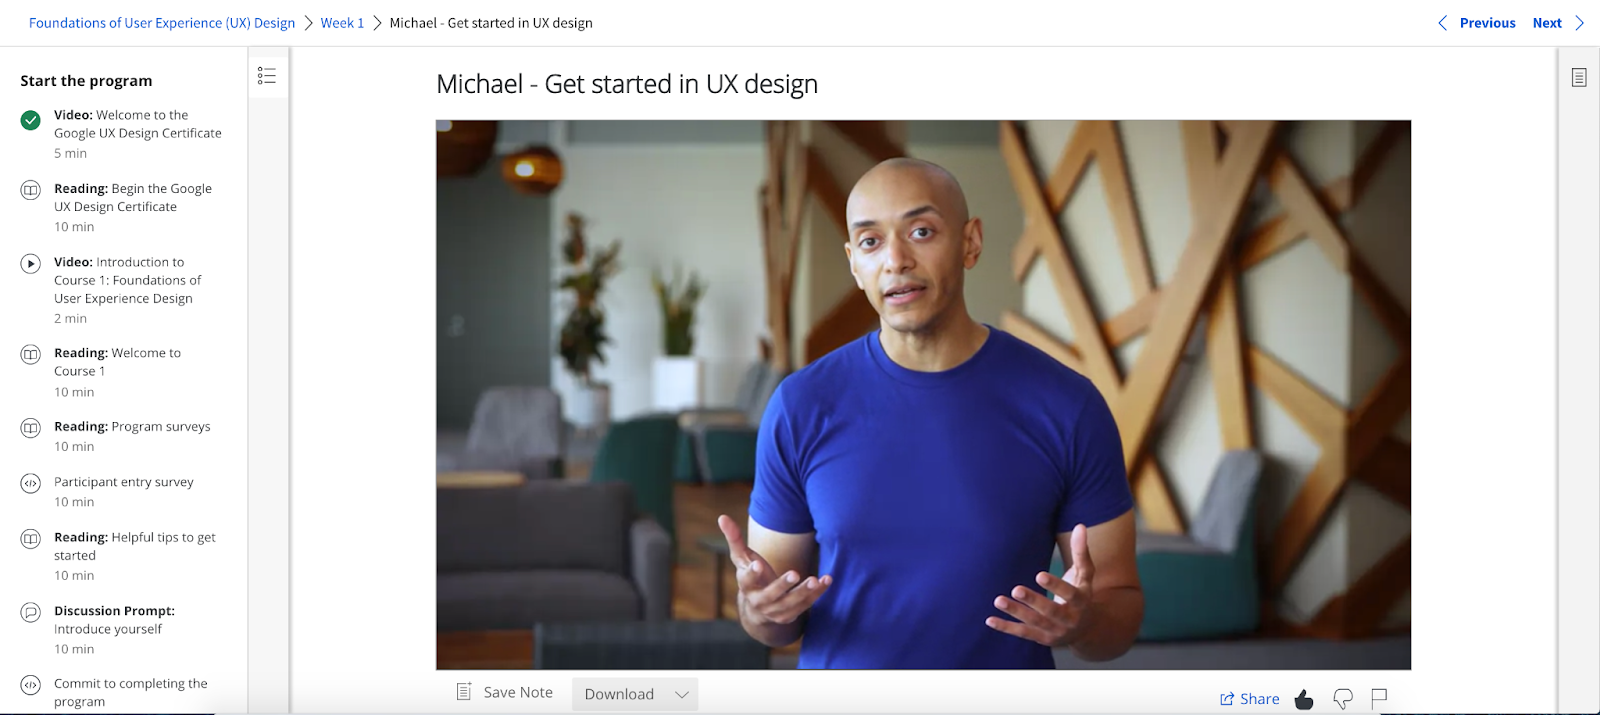 A screenshot from the Getting Started lesson in the Google UX Design Certificate course.